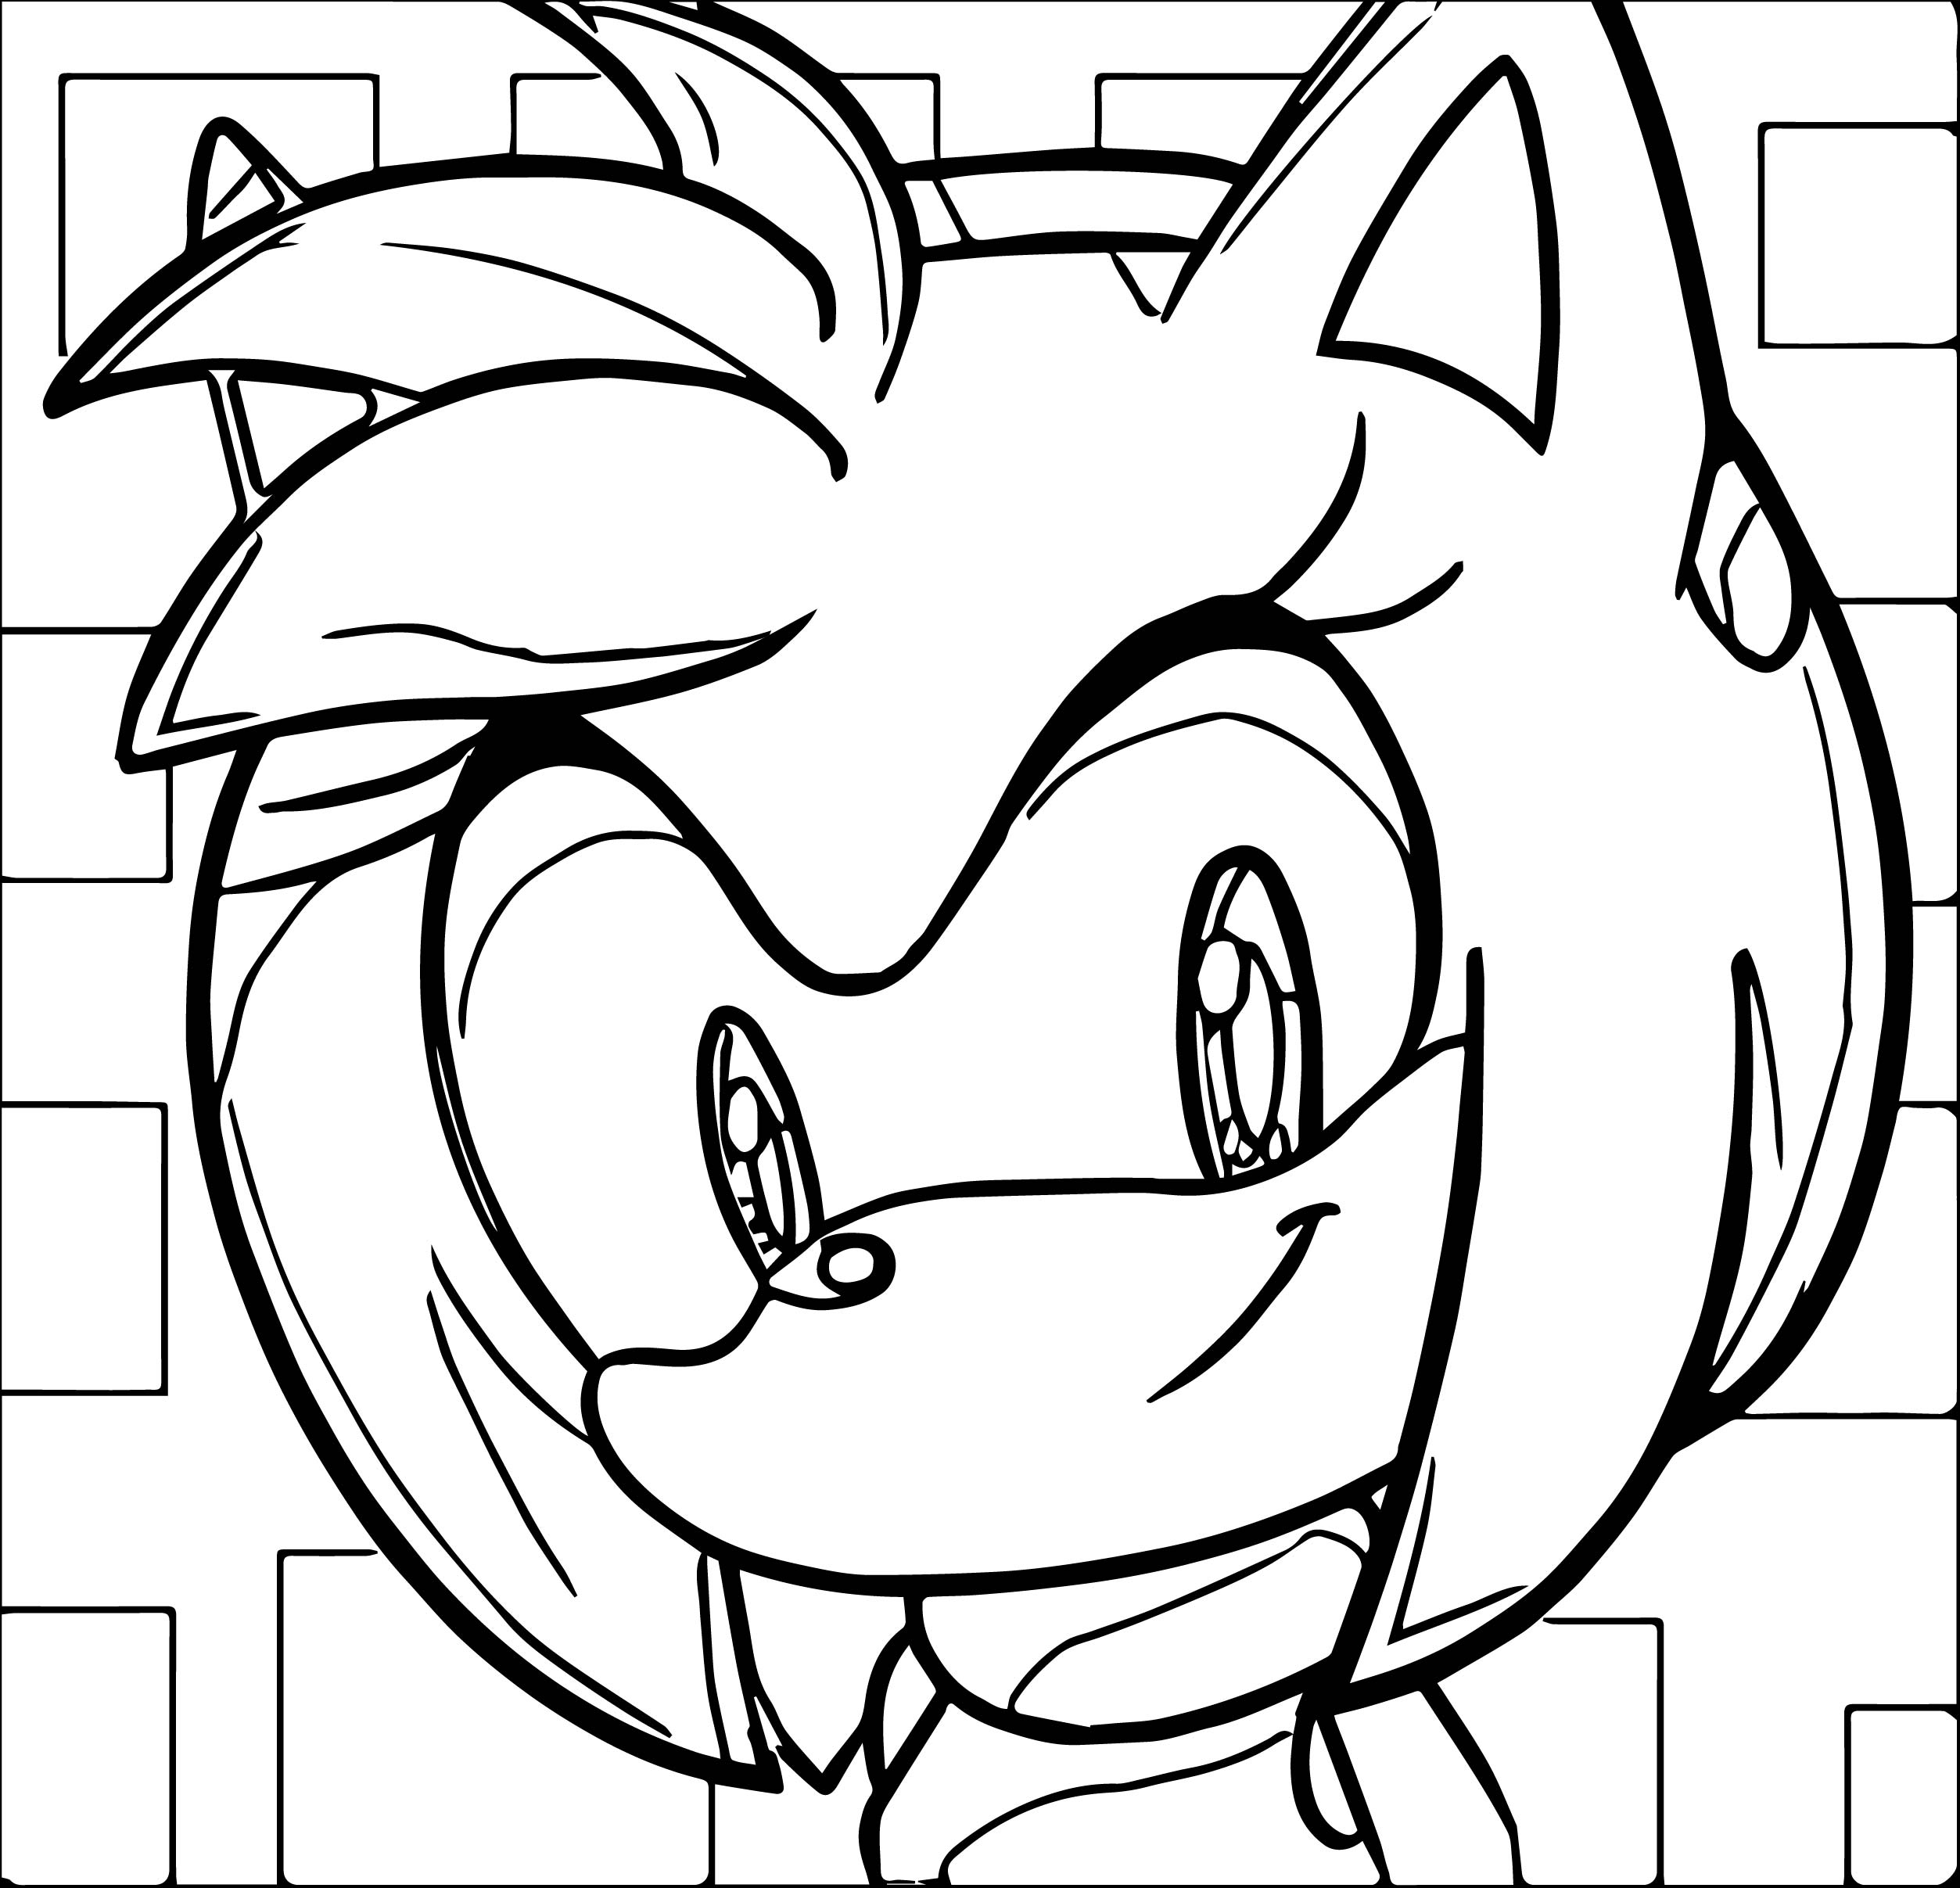 Big Amy Rose Coloring Page | Wecoloringpage.com